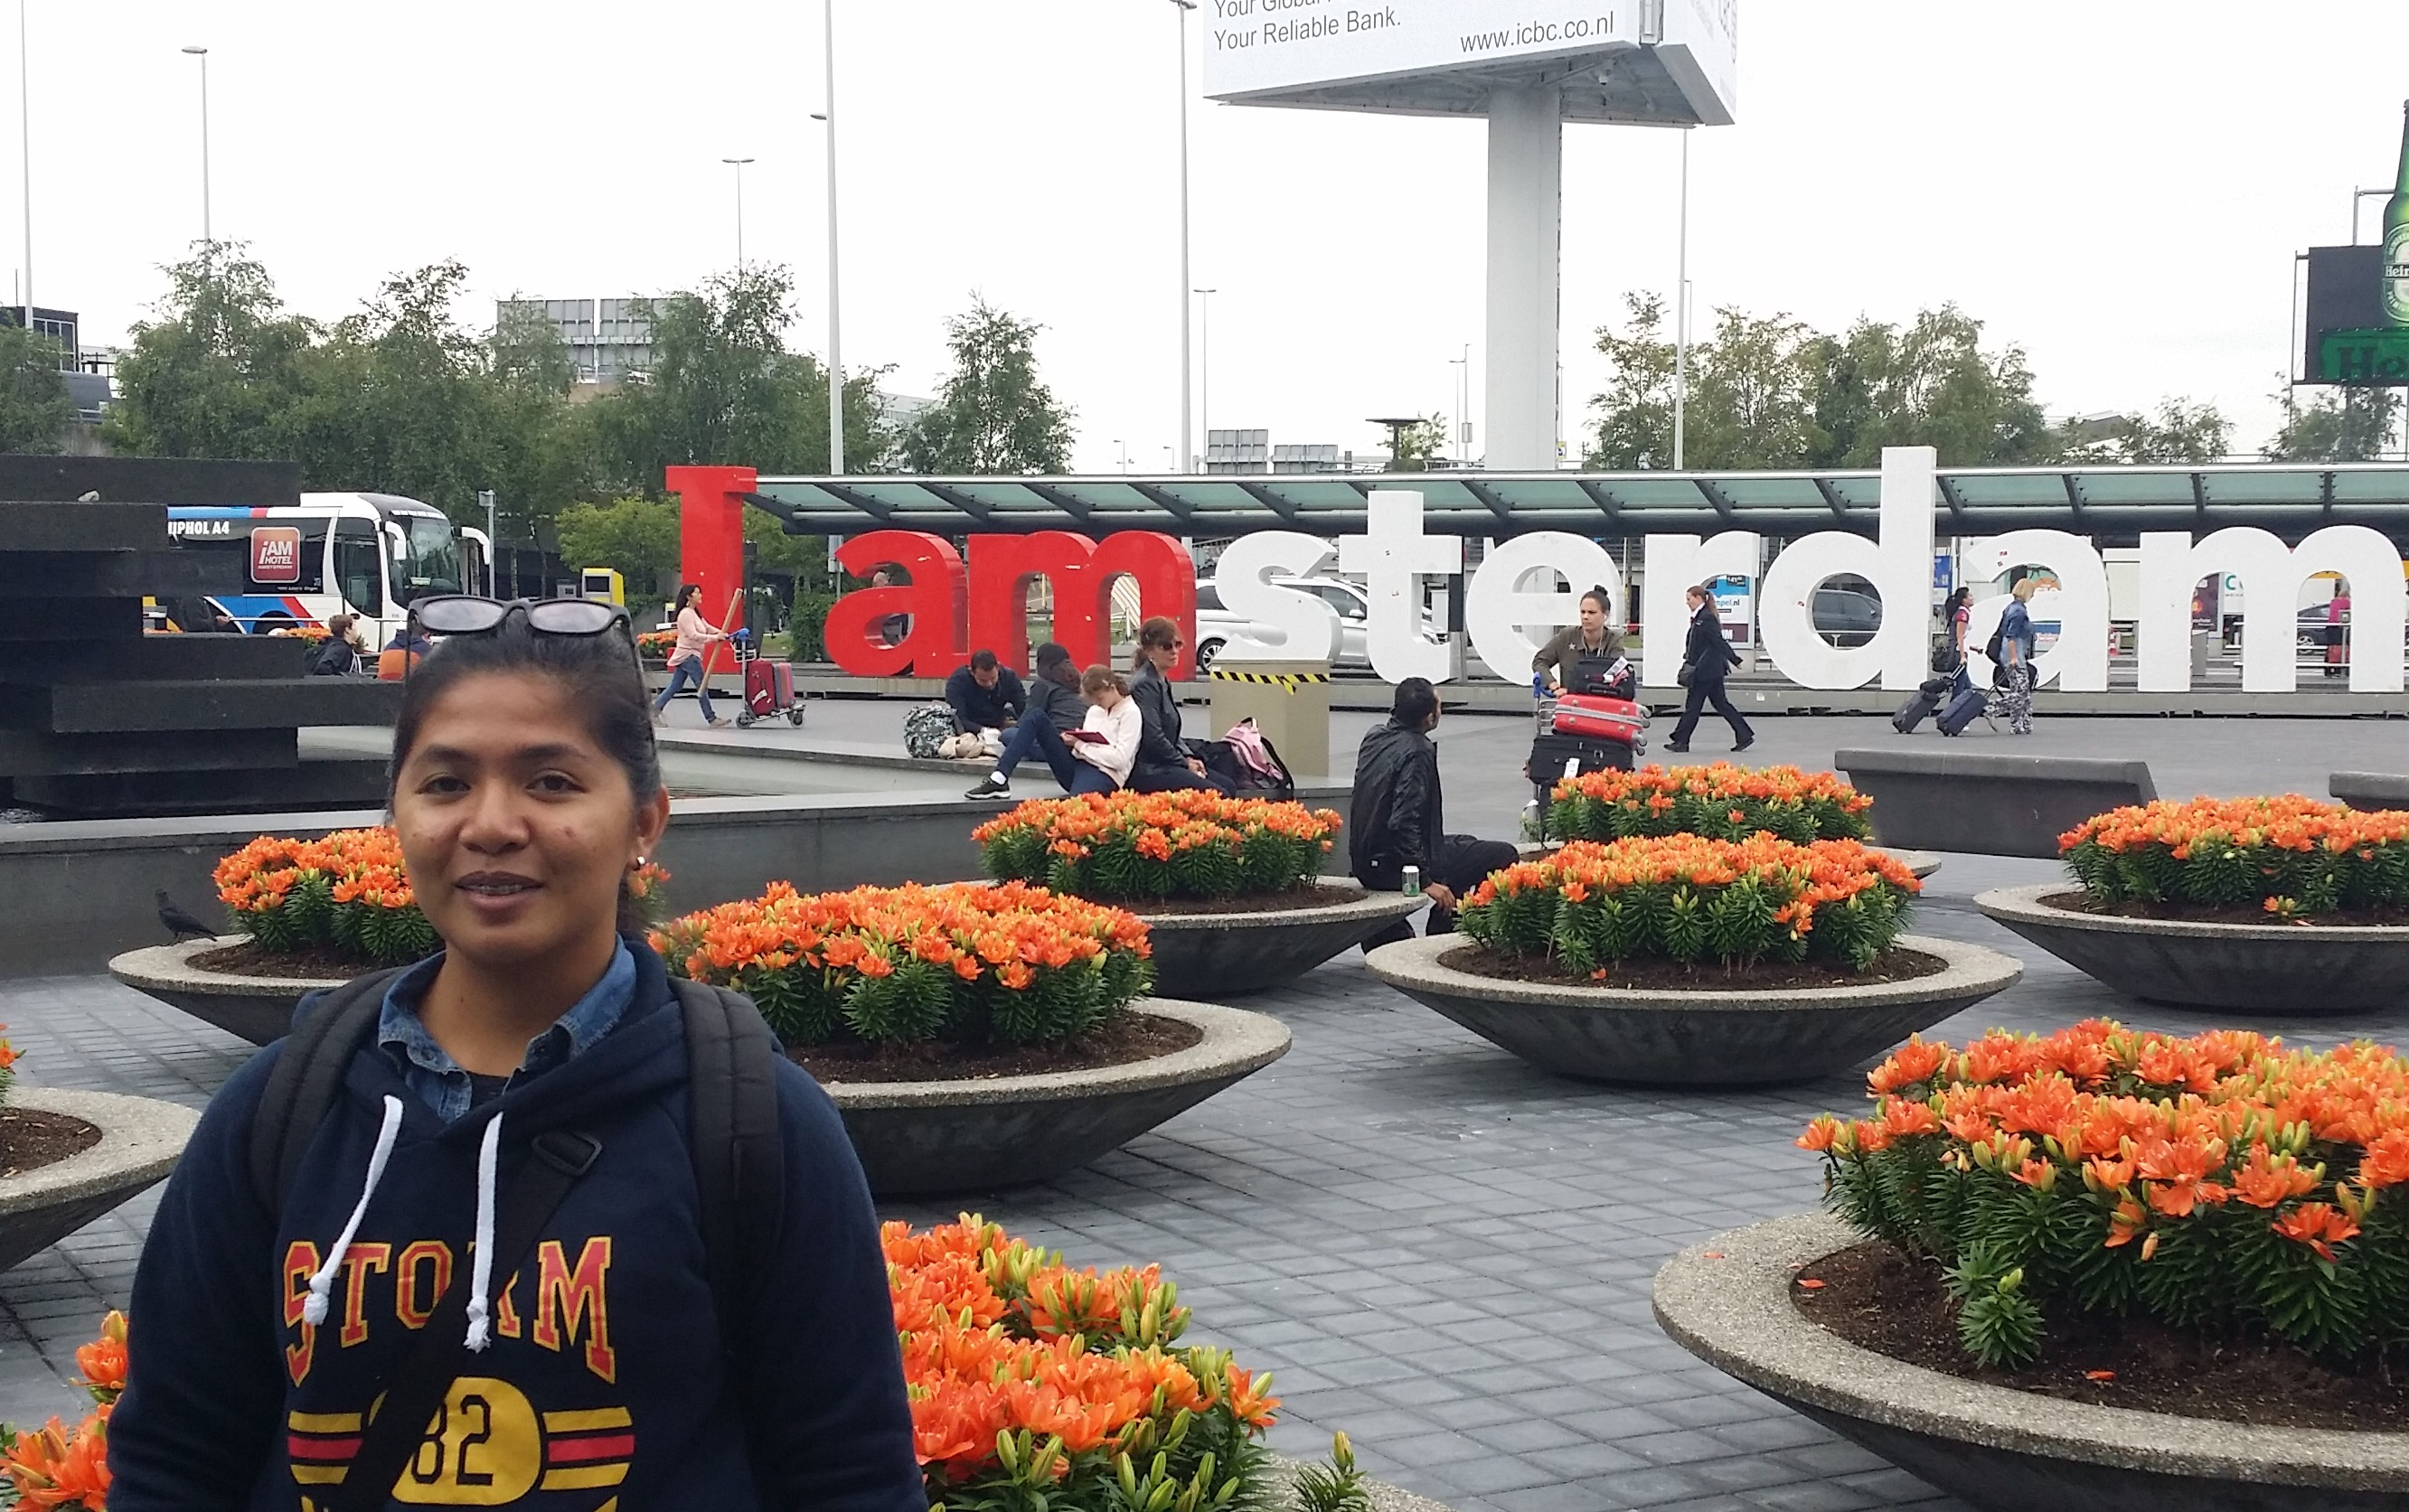 (Nederlands) Rona in Holland